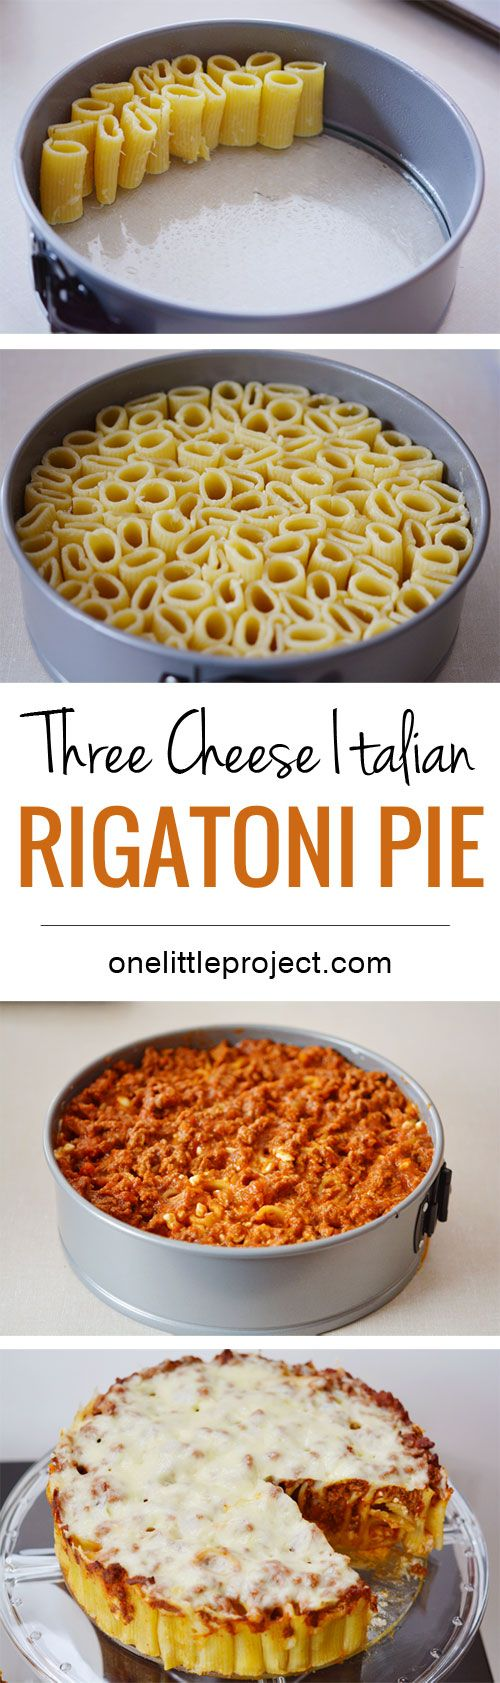 RECETAS.....❤How fun is this? Stand up rigatoni noodles in a spring form pan and suddenly you have rigatoni pie, a fun and totally different way to serve pasta when you are in a slump!